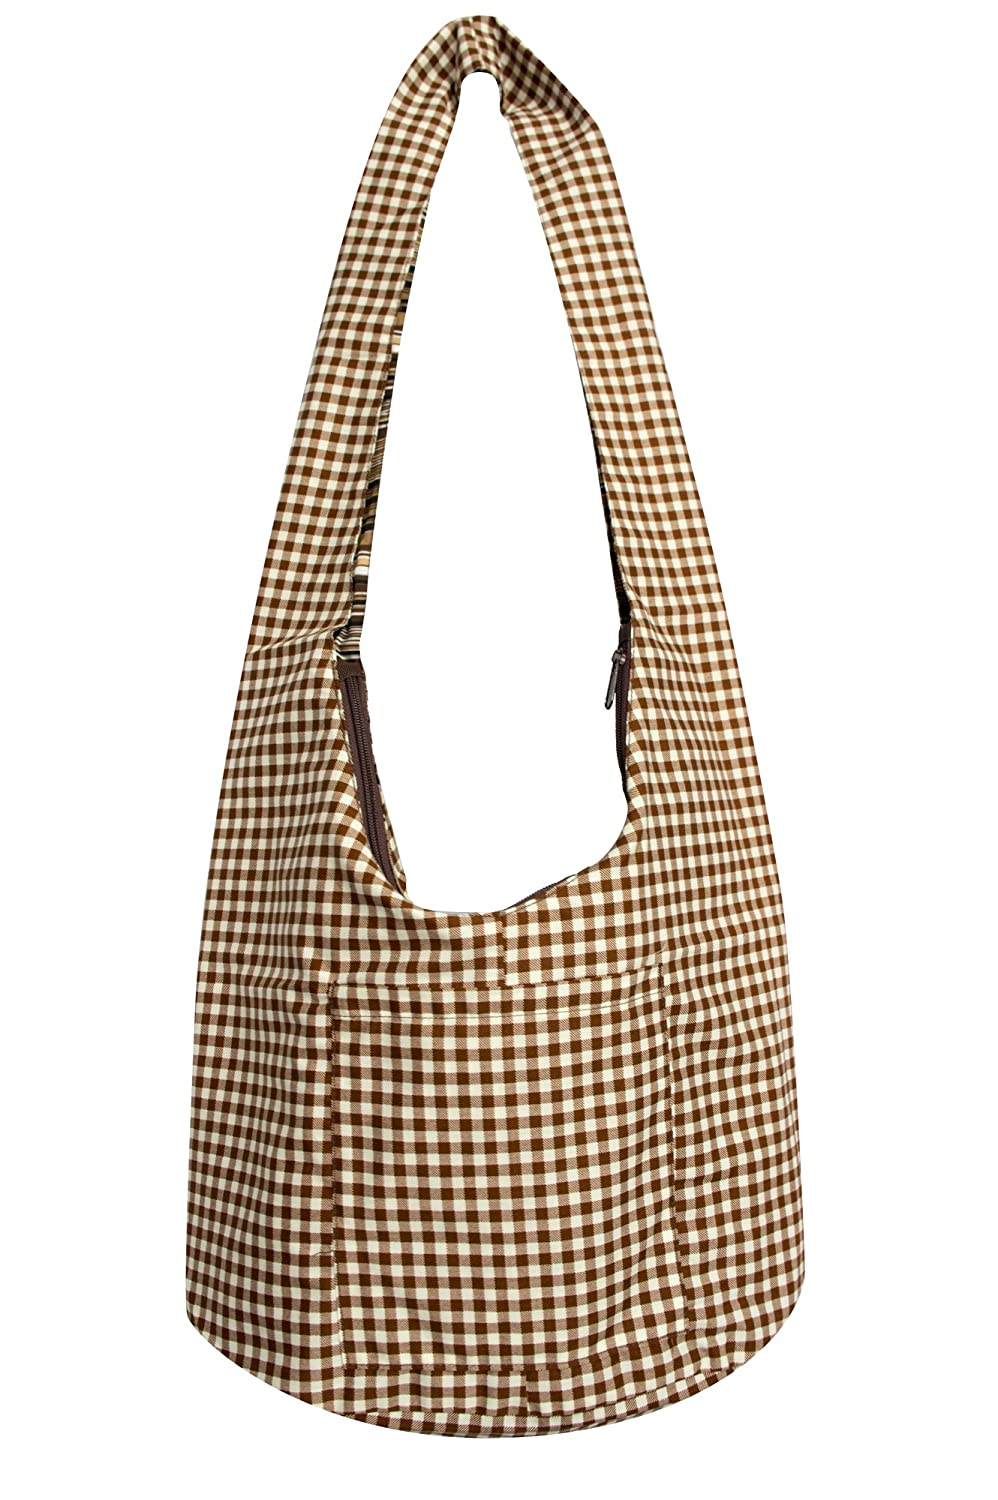 Avarada Hippie Hobo Cotton Crossbody Shoulder Bohemian Bag Medium Size Checker Pattren Brown White